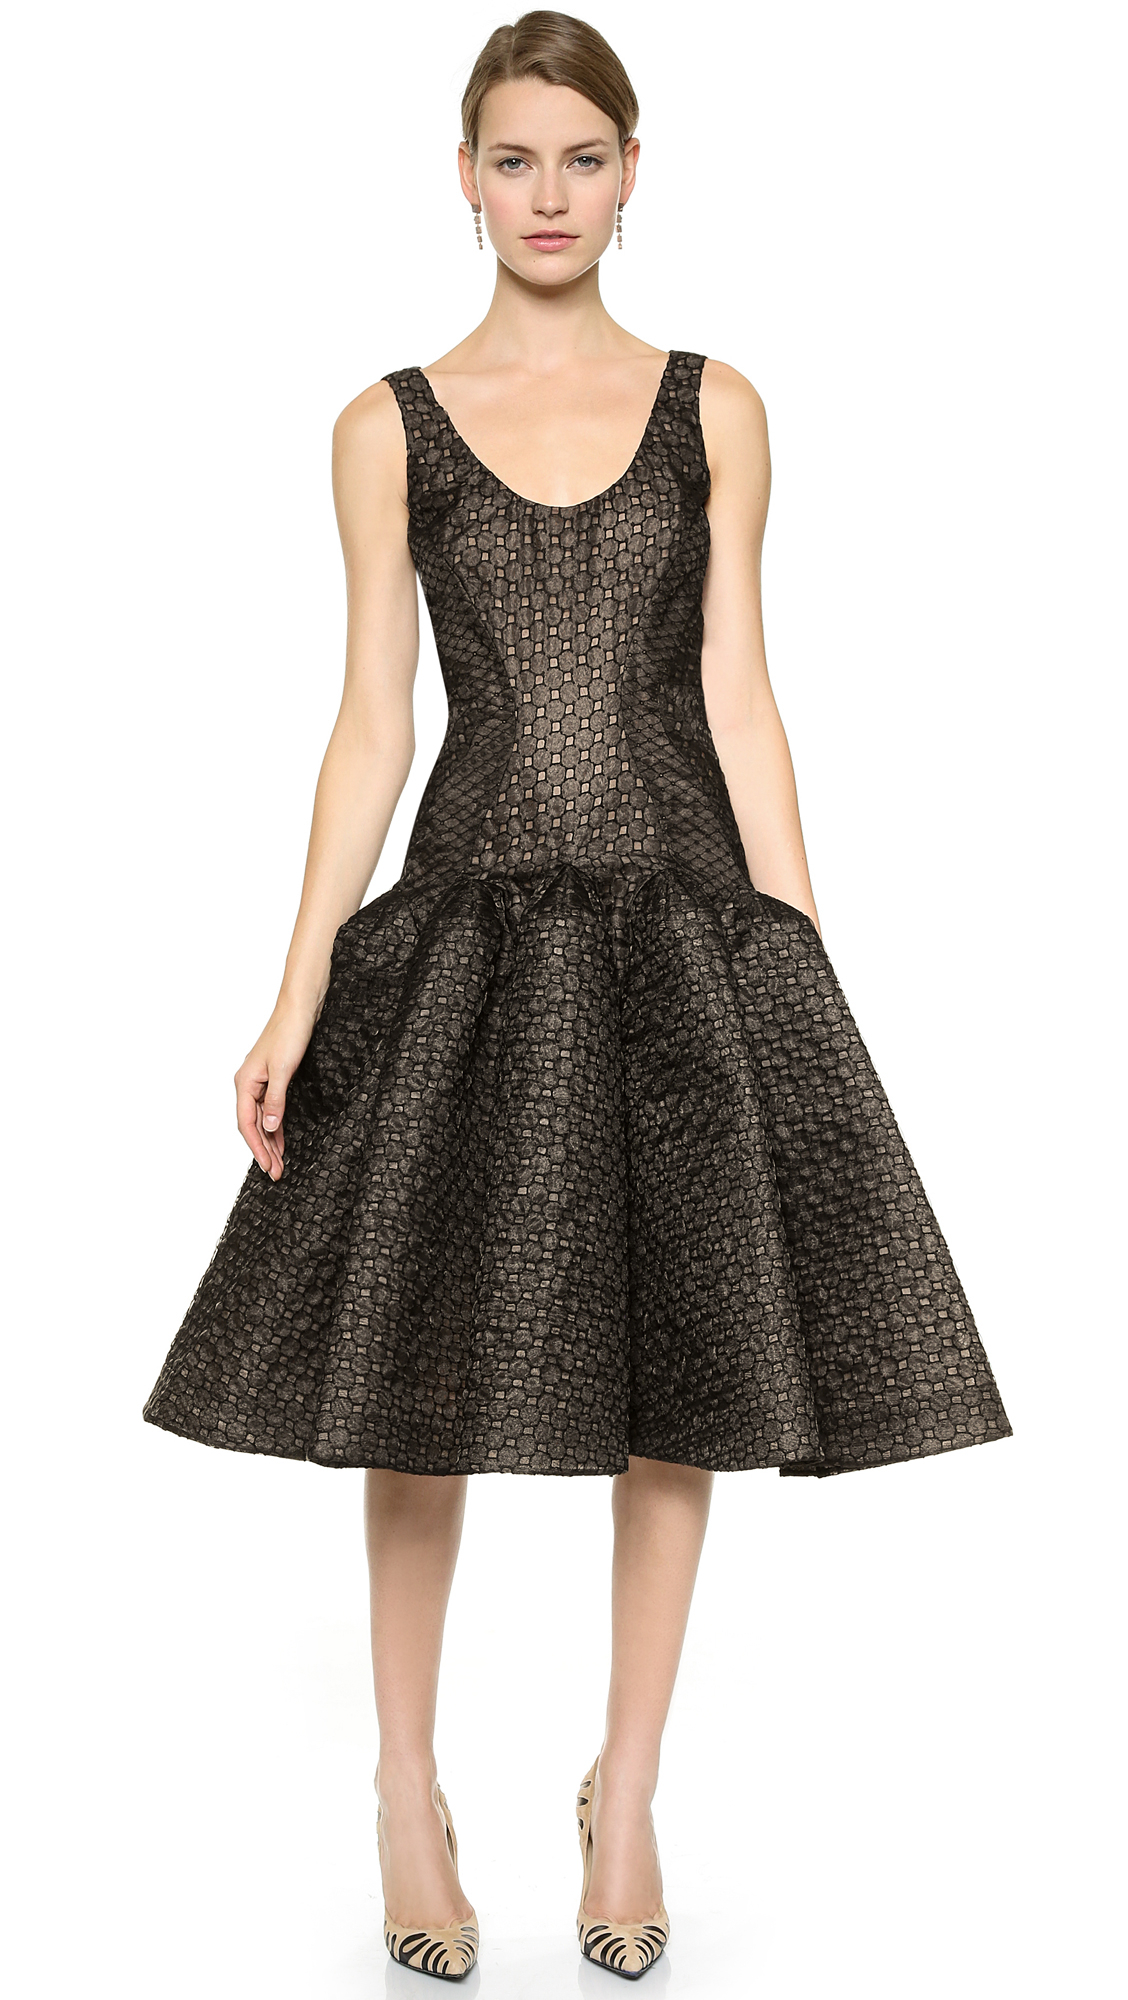 Zac posen Embroidered Organza Dress - Black/Nude in Black  Lyst